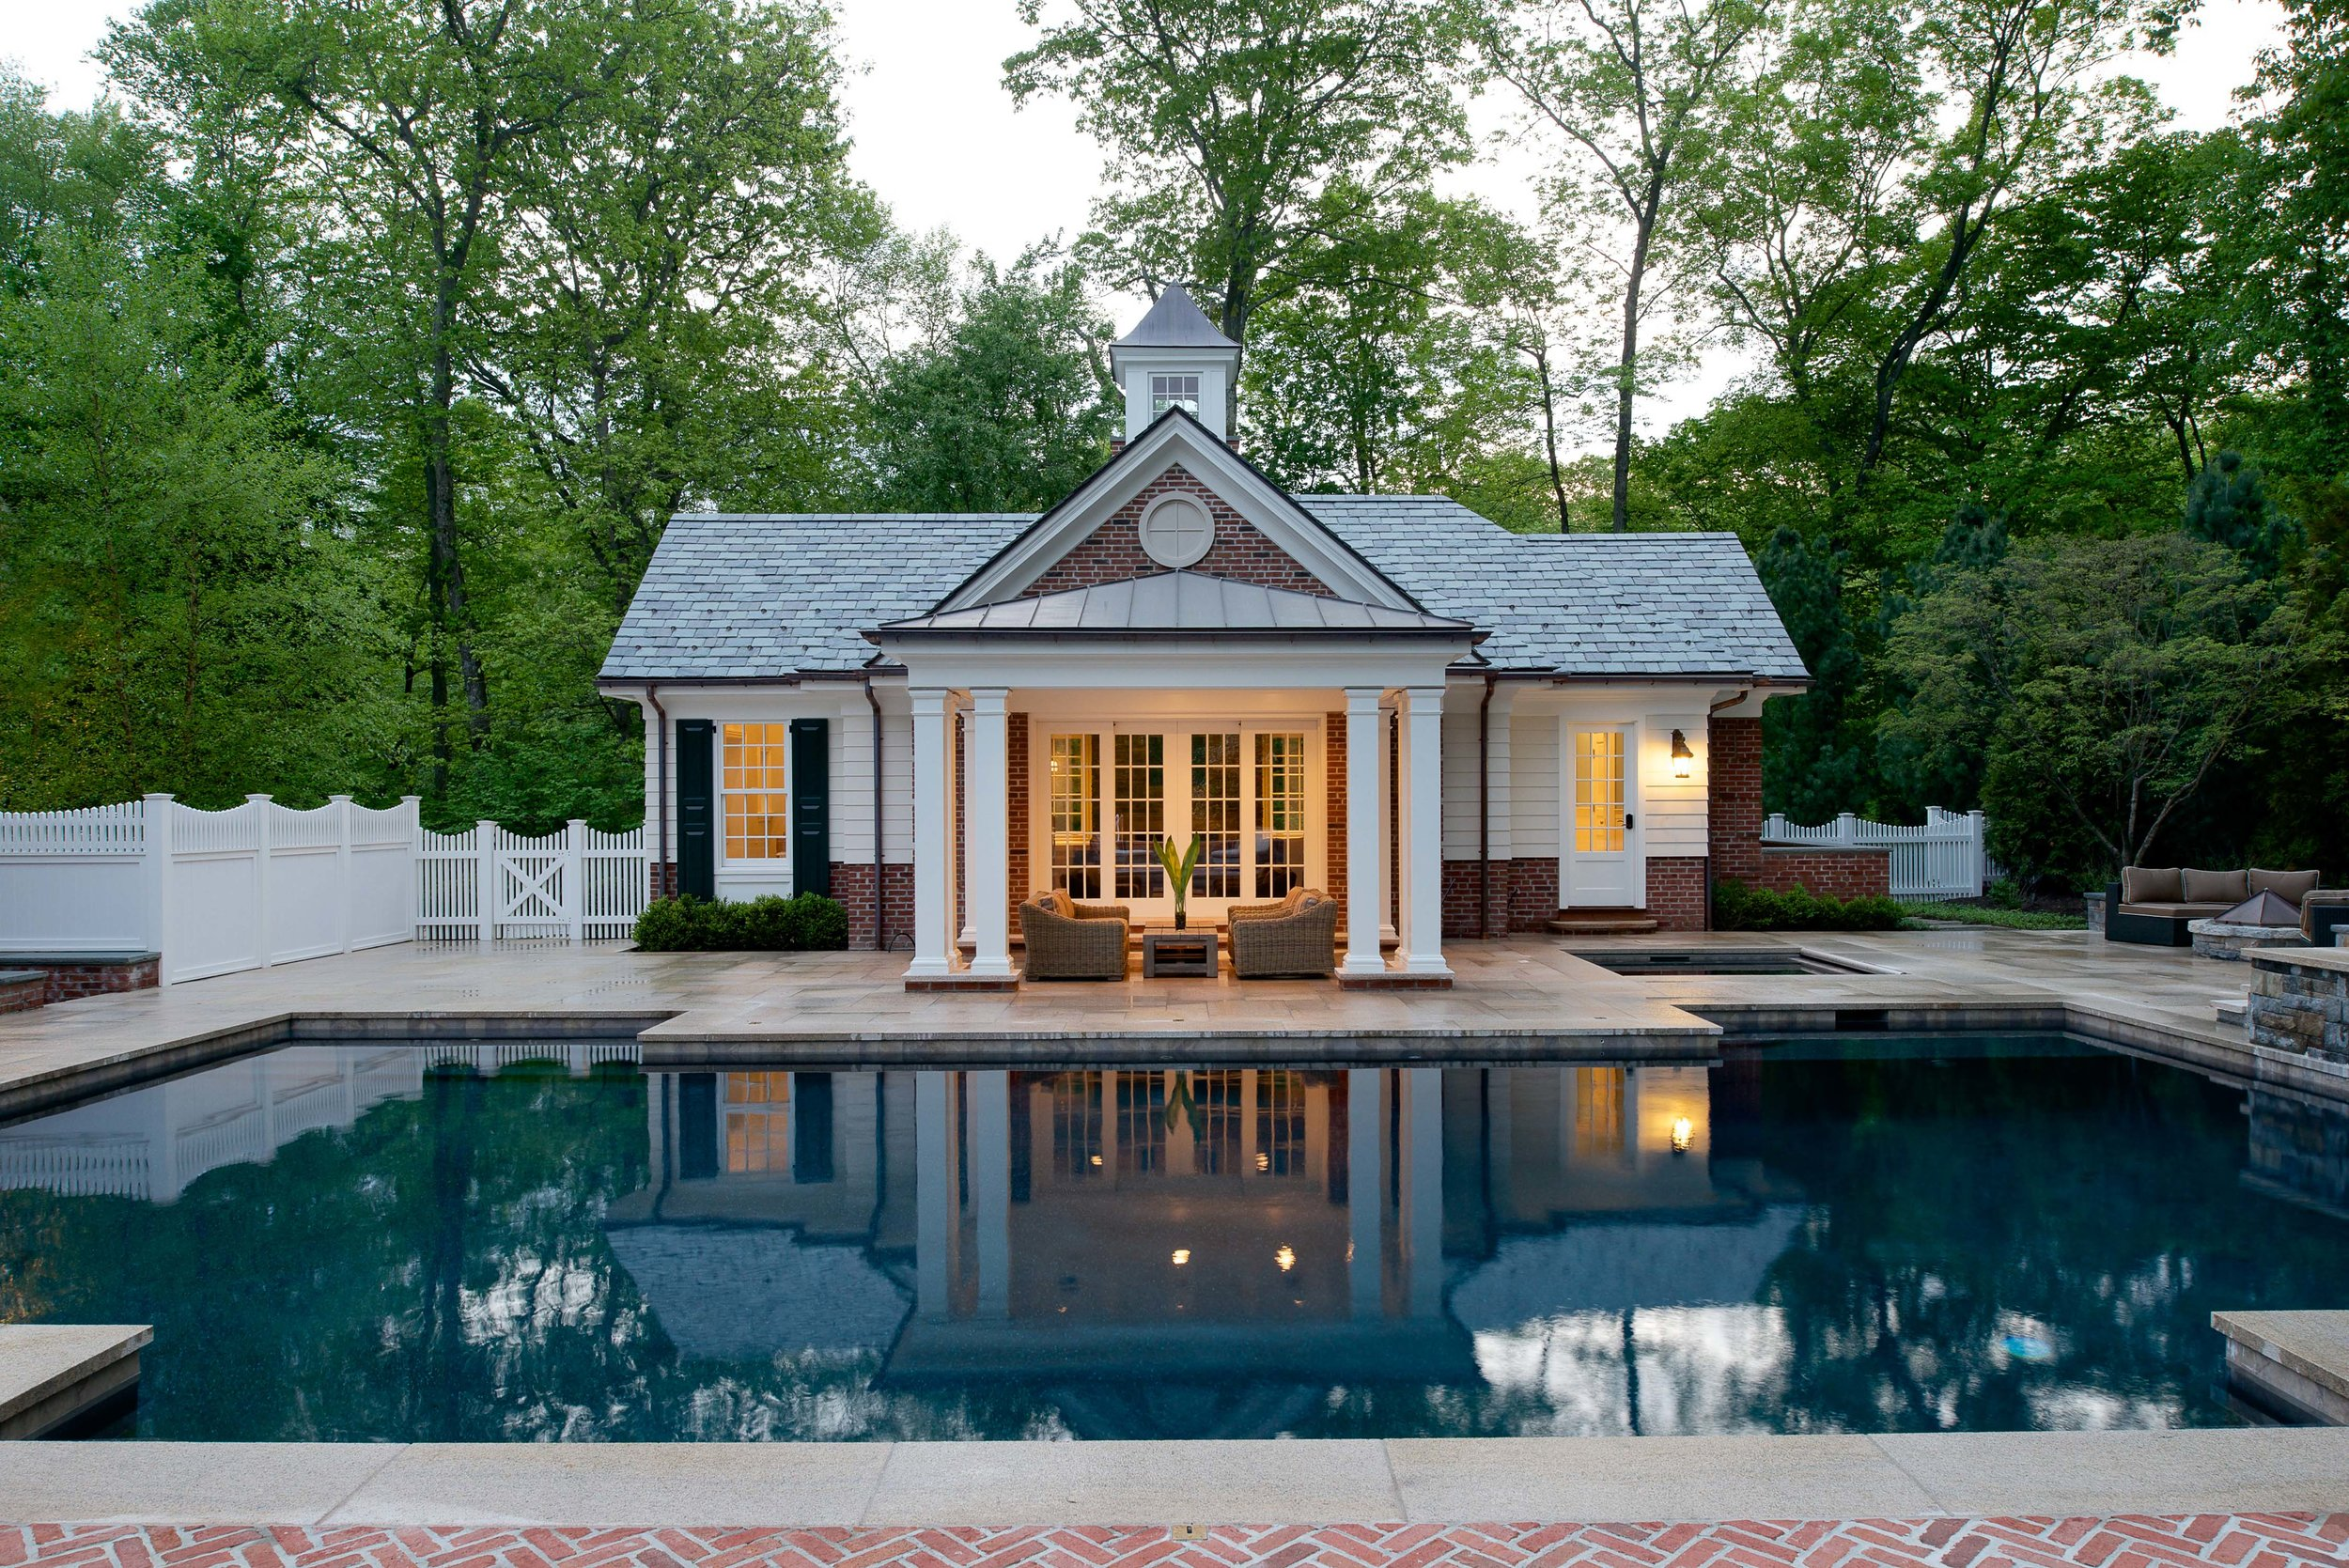 Pool house at dusk